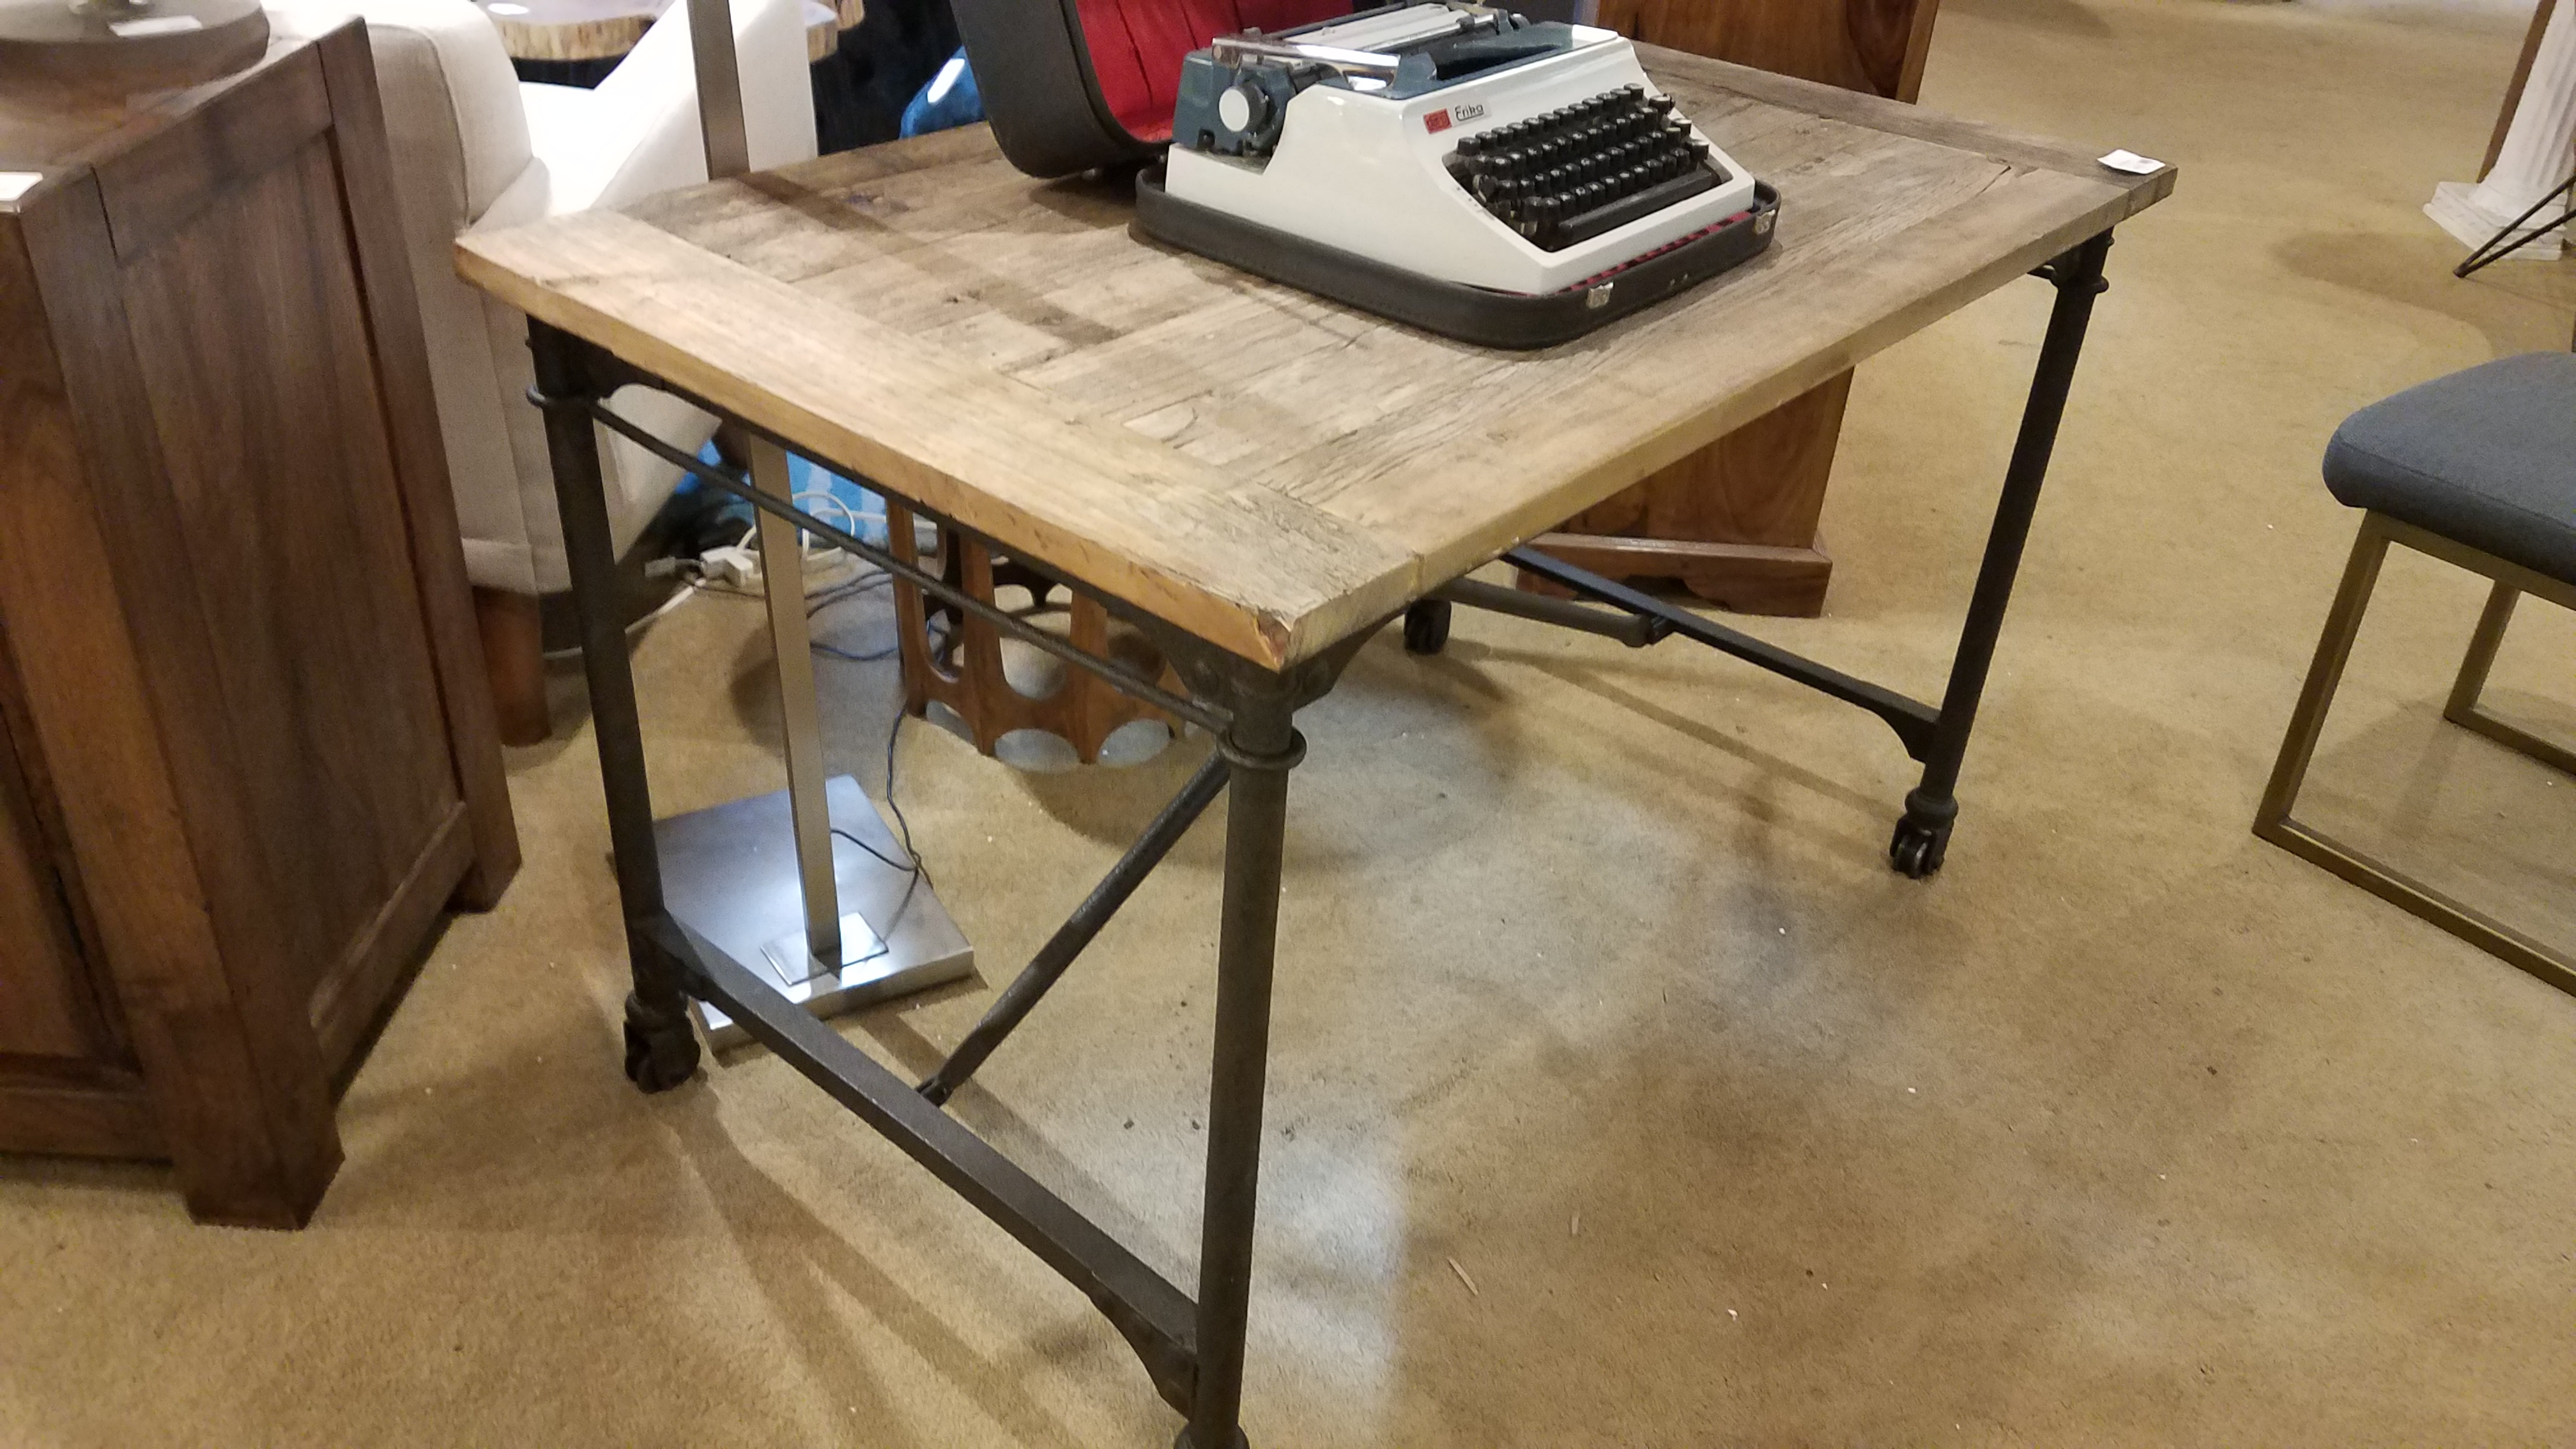 Surprising Rustic Metal Desk On Casters Sold Download Free Architecture Designs Scobabritishbridgeorg